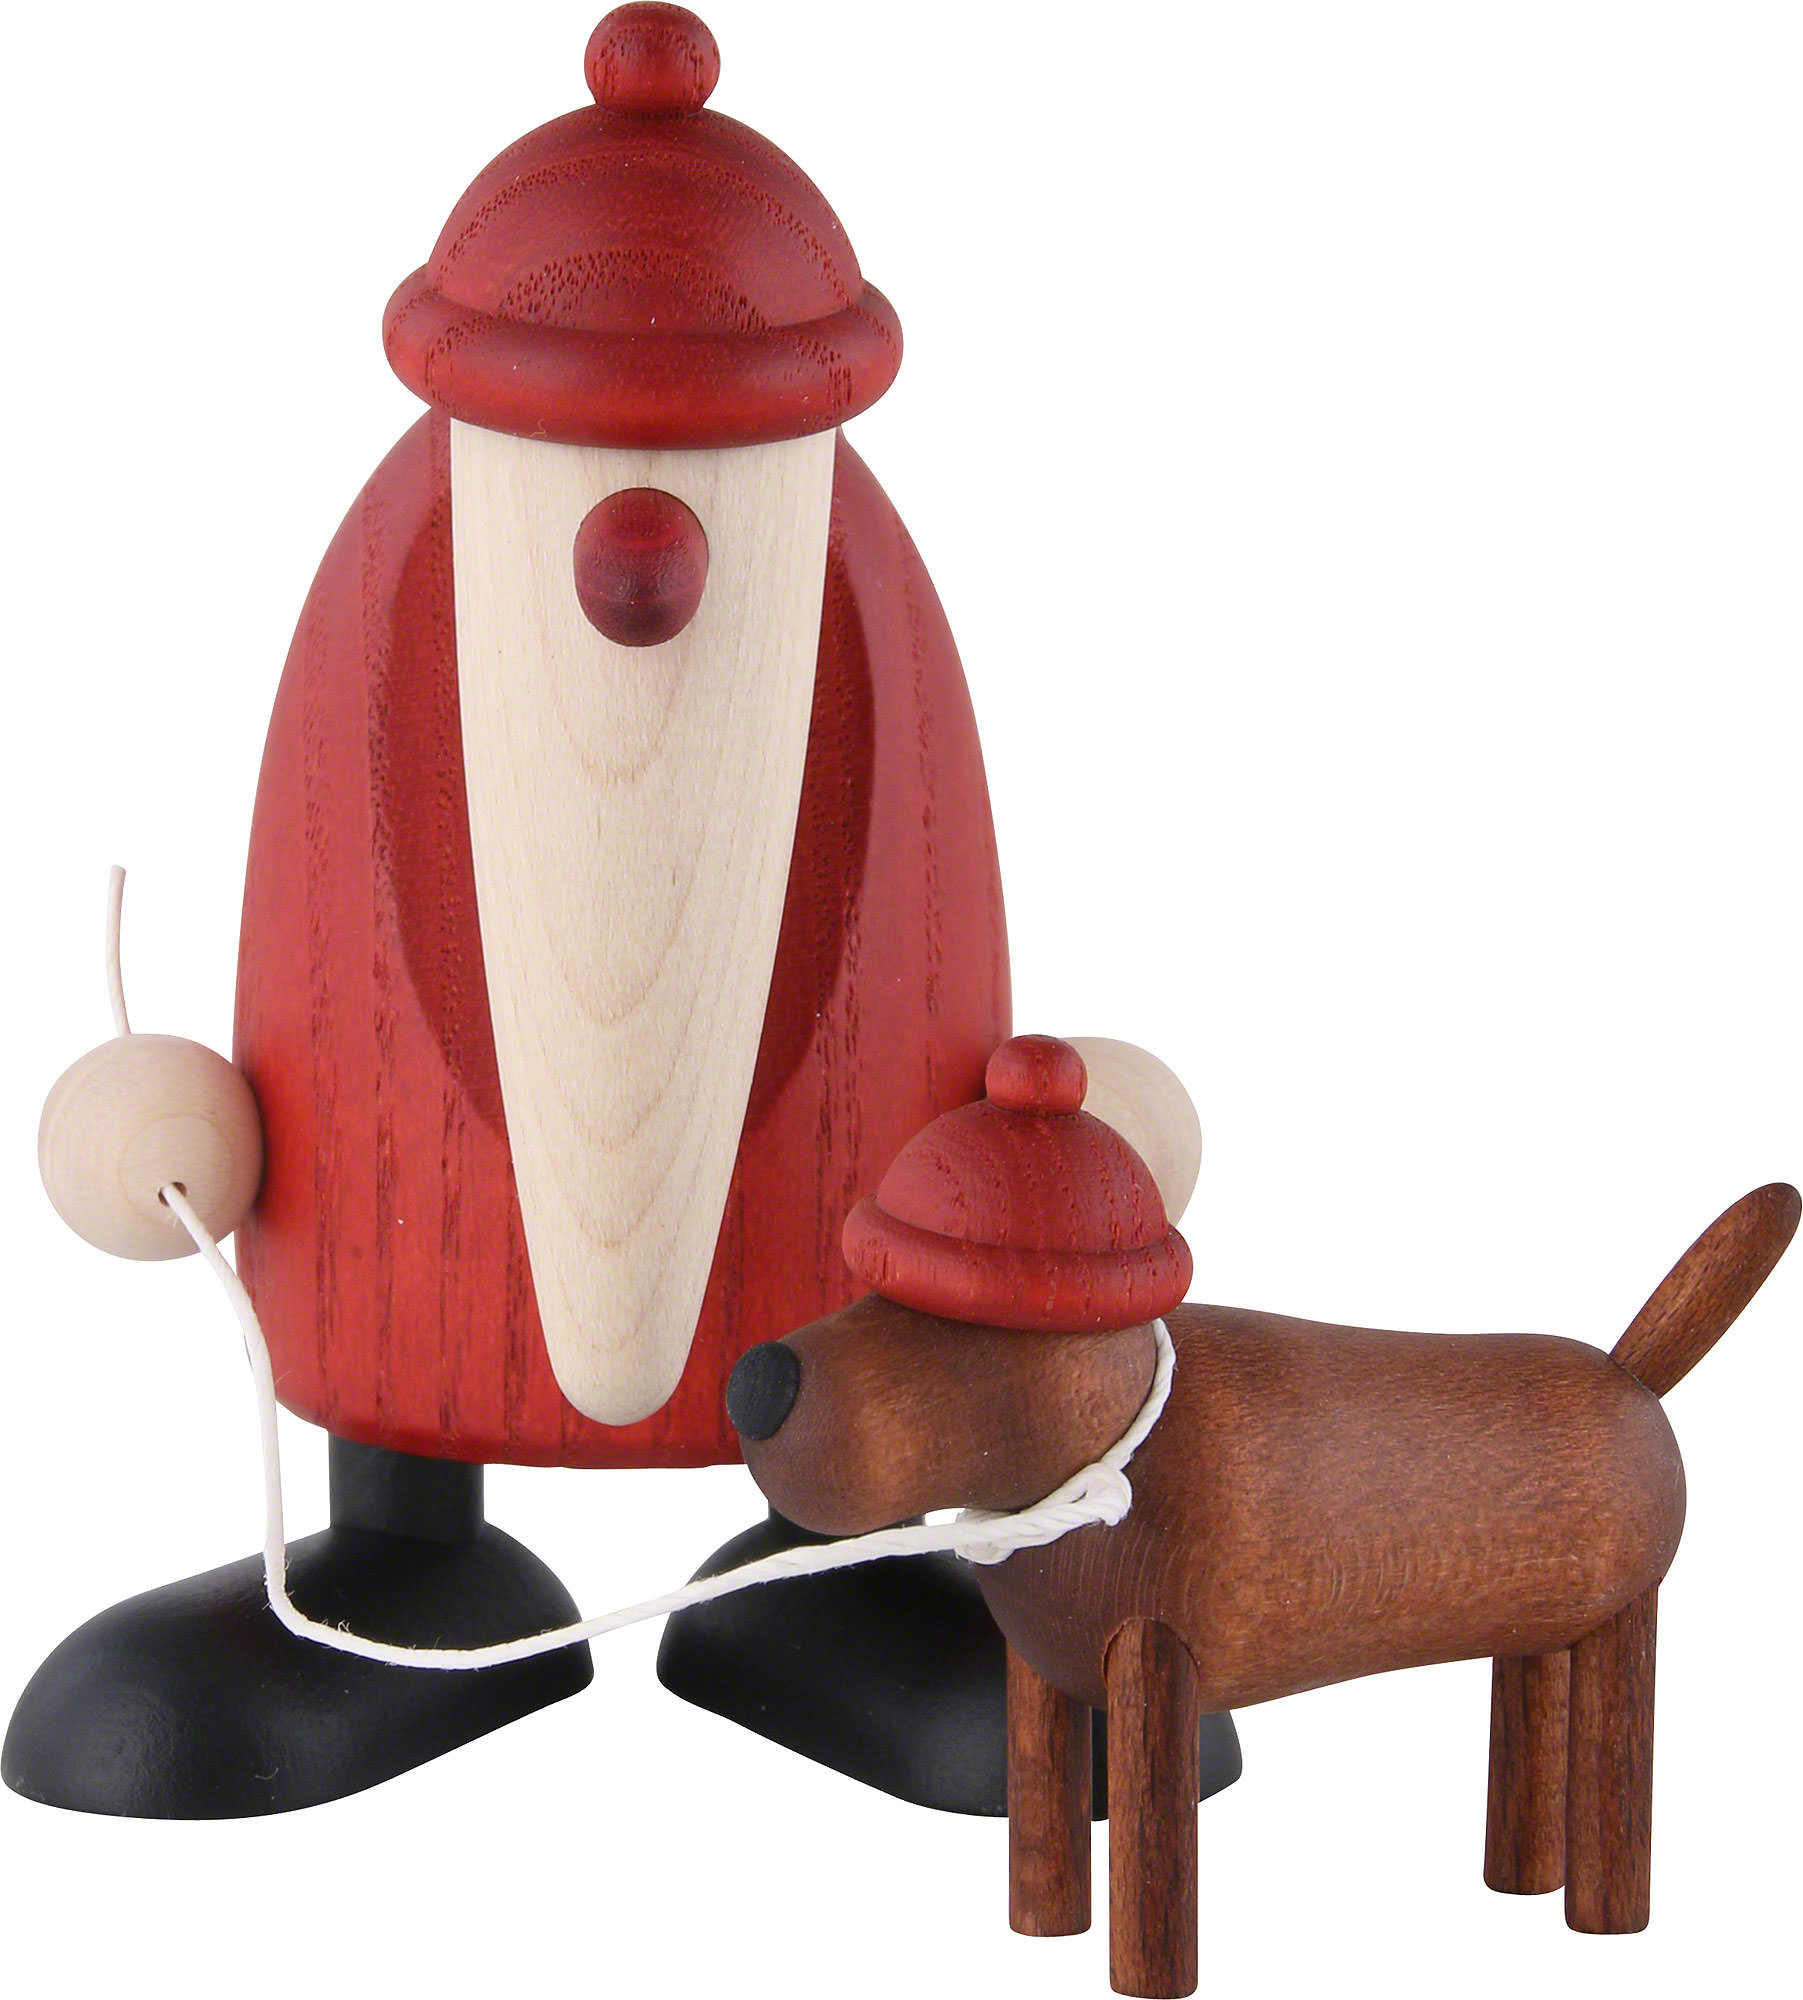 santa claus with dachshound waldemar 9 cm by bj rn k hler kunsthandwerk. Black Bedroom Furniture Sets. Home Design Ideas